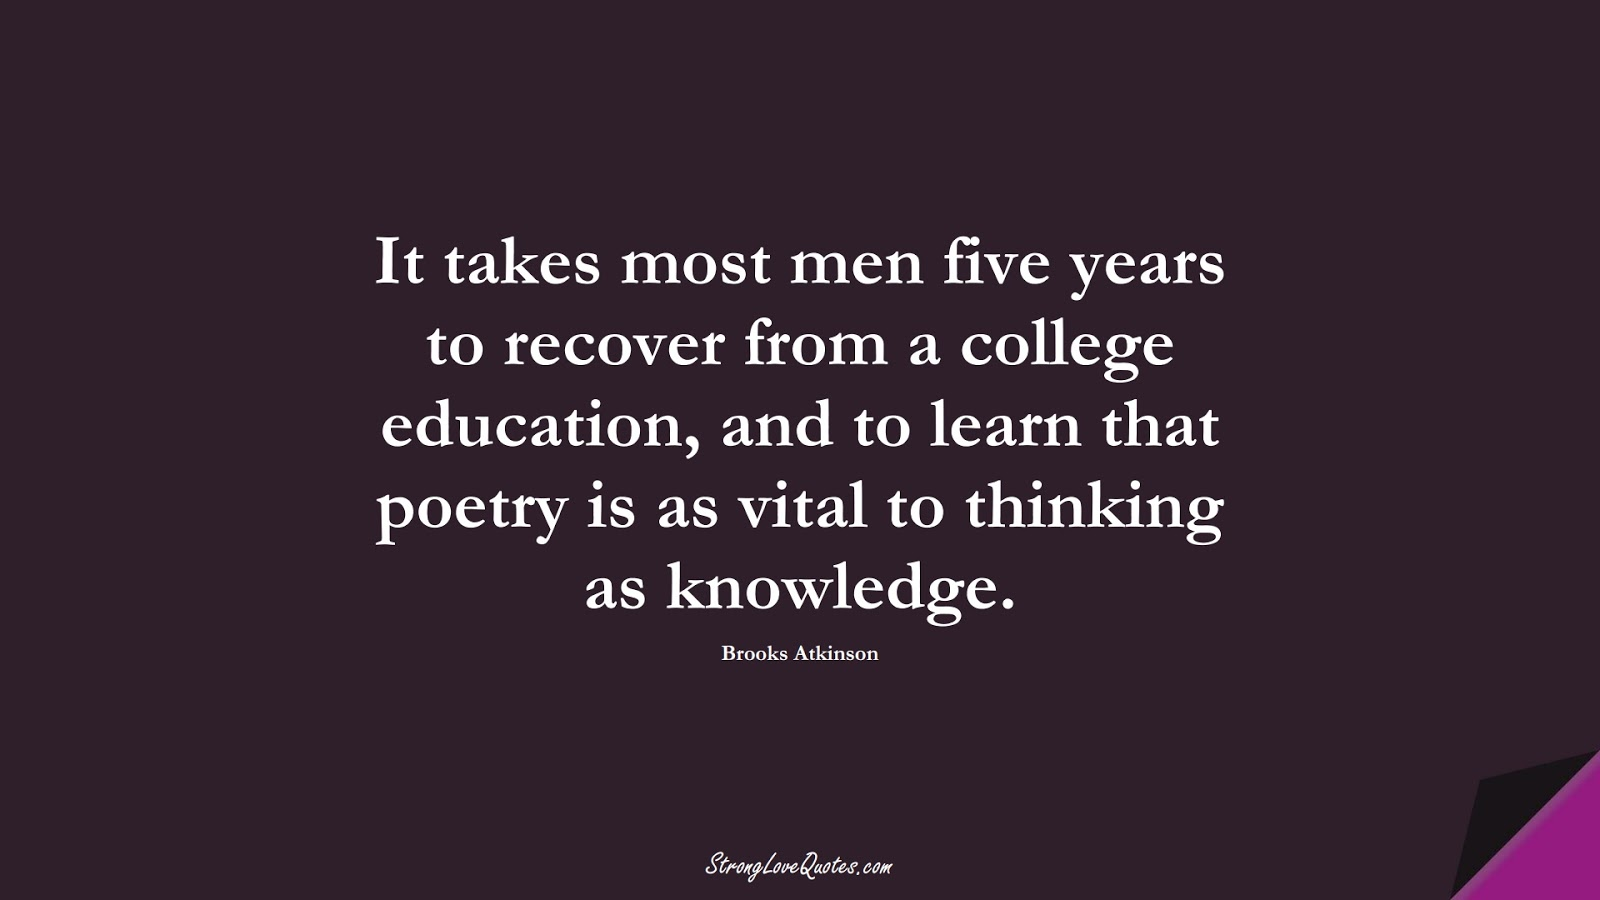 It takes most men five years to recover from a college education, and to learn that poetry is as vital to thinking as knowledge. (Brooks Atkinson);  #EducationQuotes